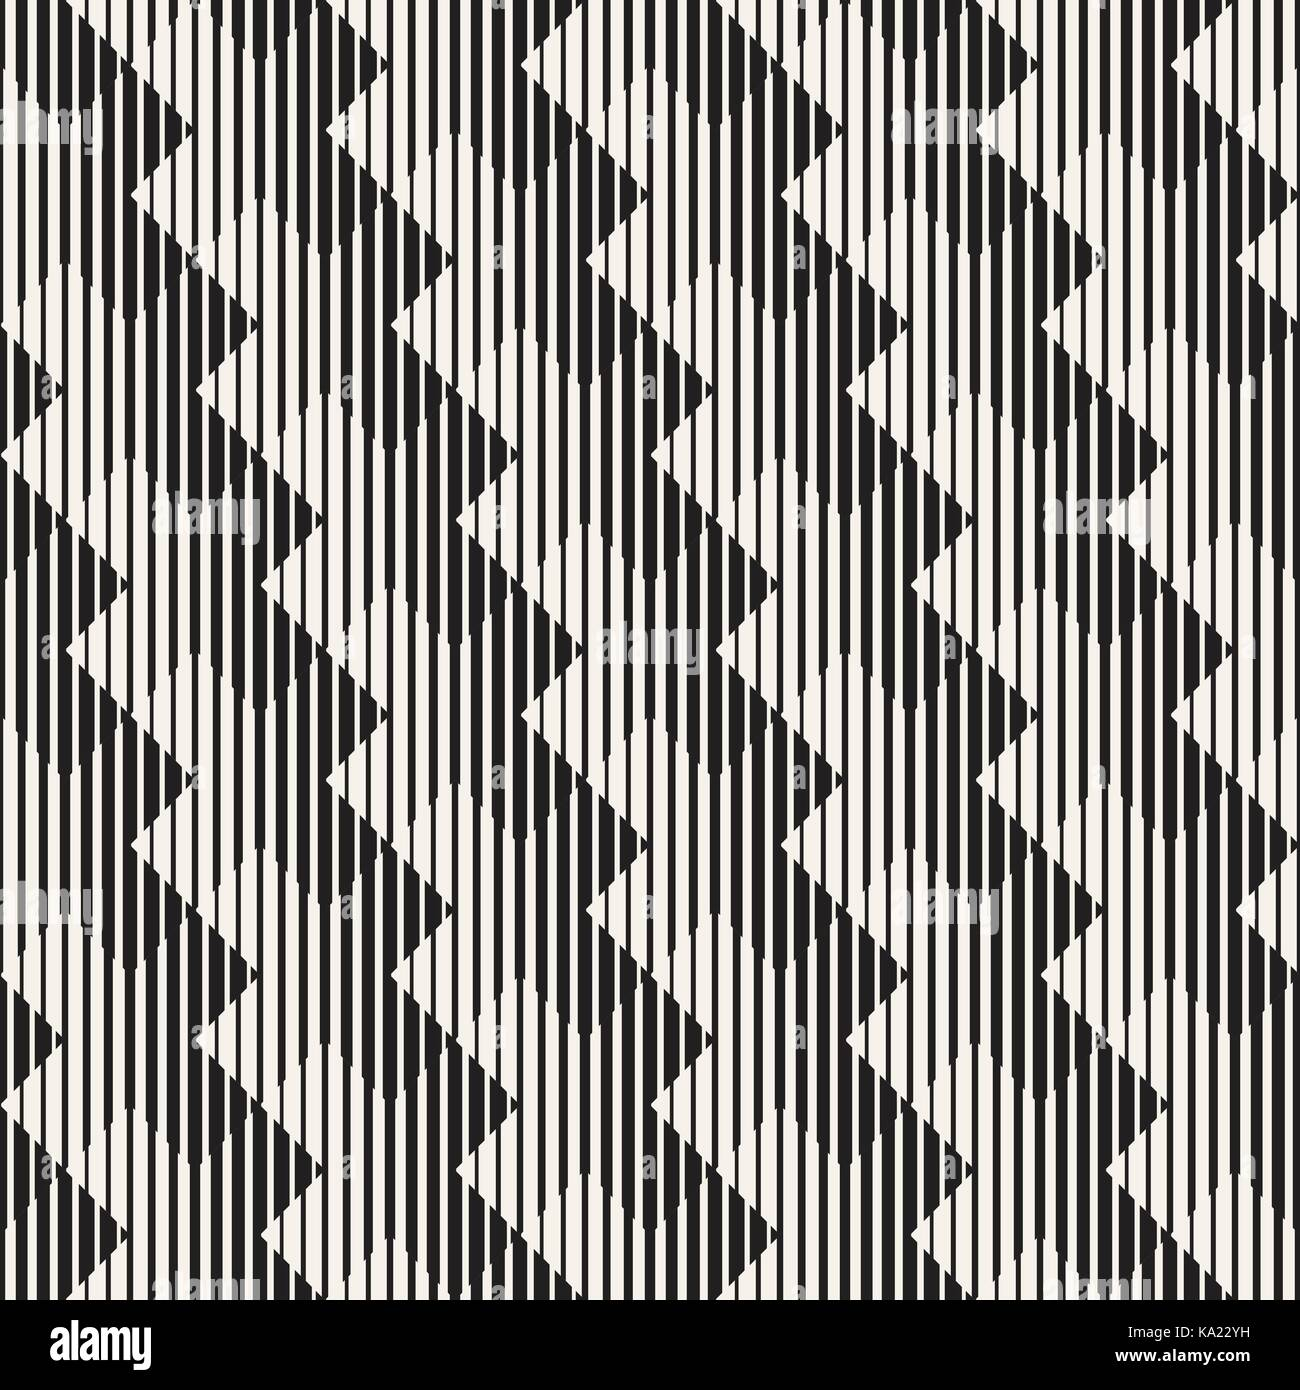 Vector seamless black and white lines pattern abstract background cross shapes geometric tiling ornament